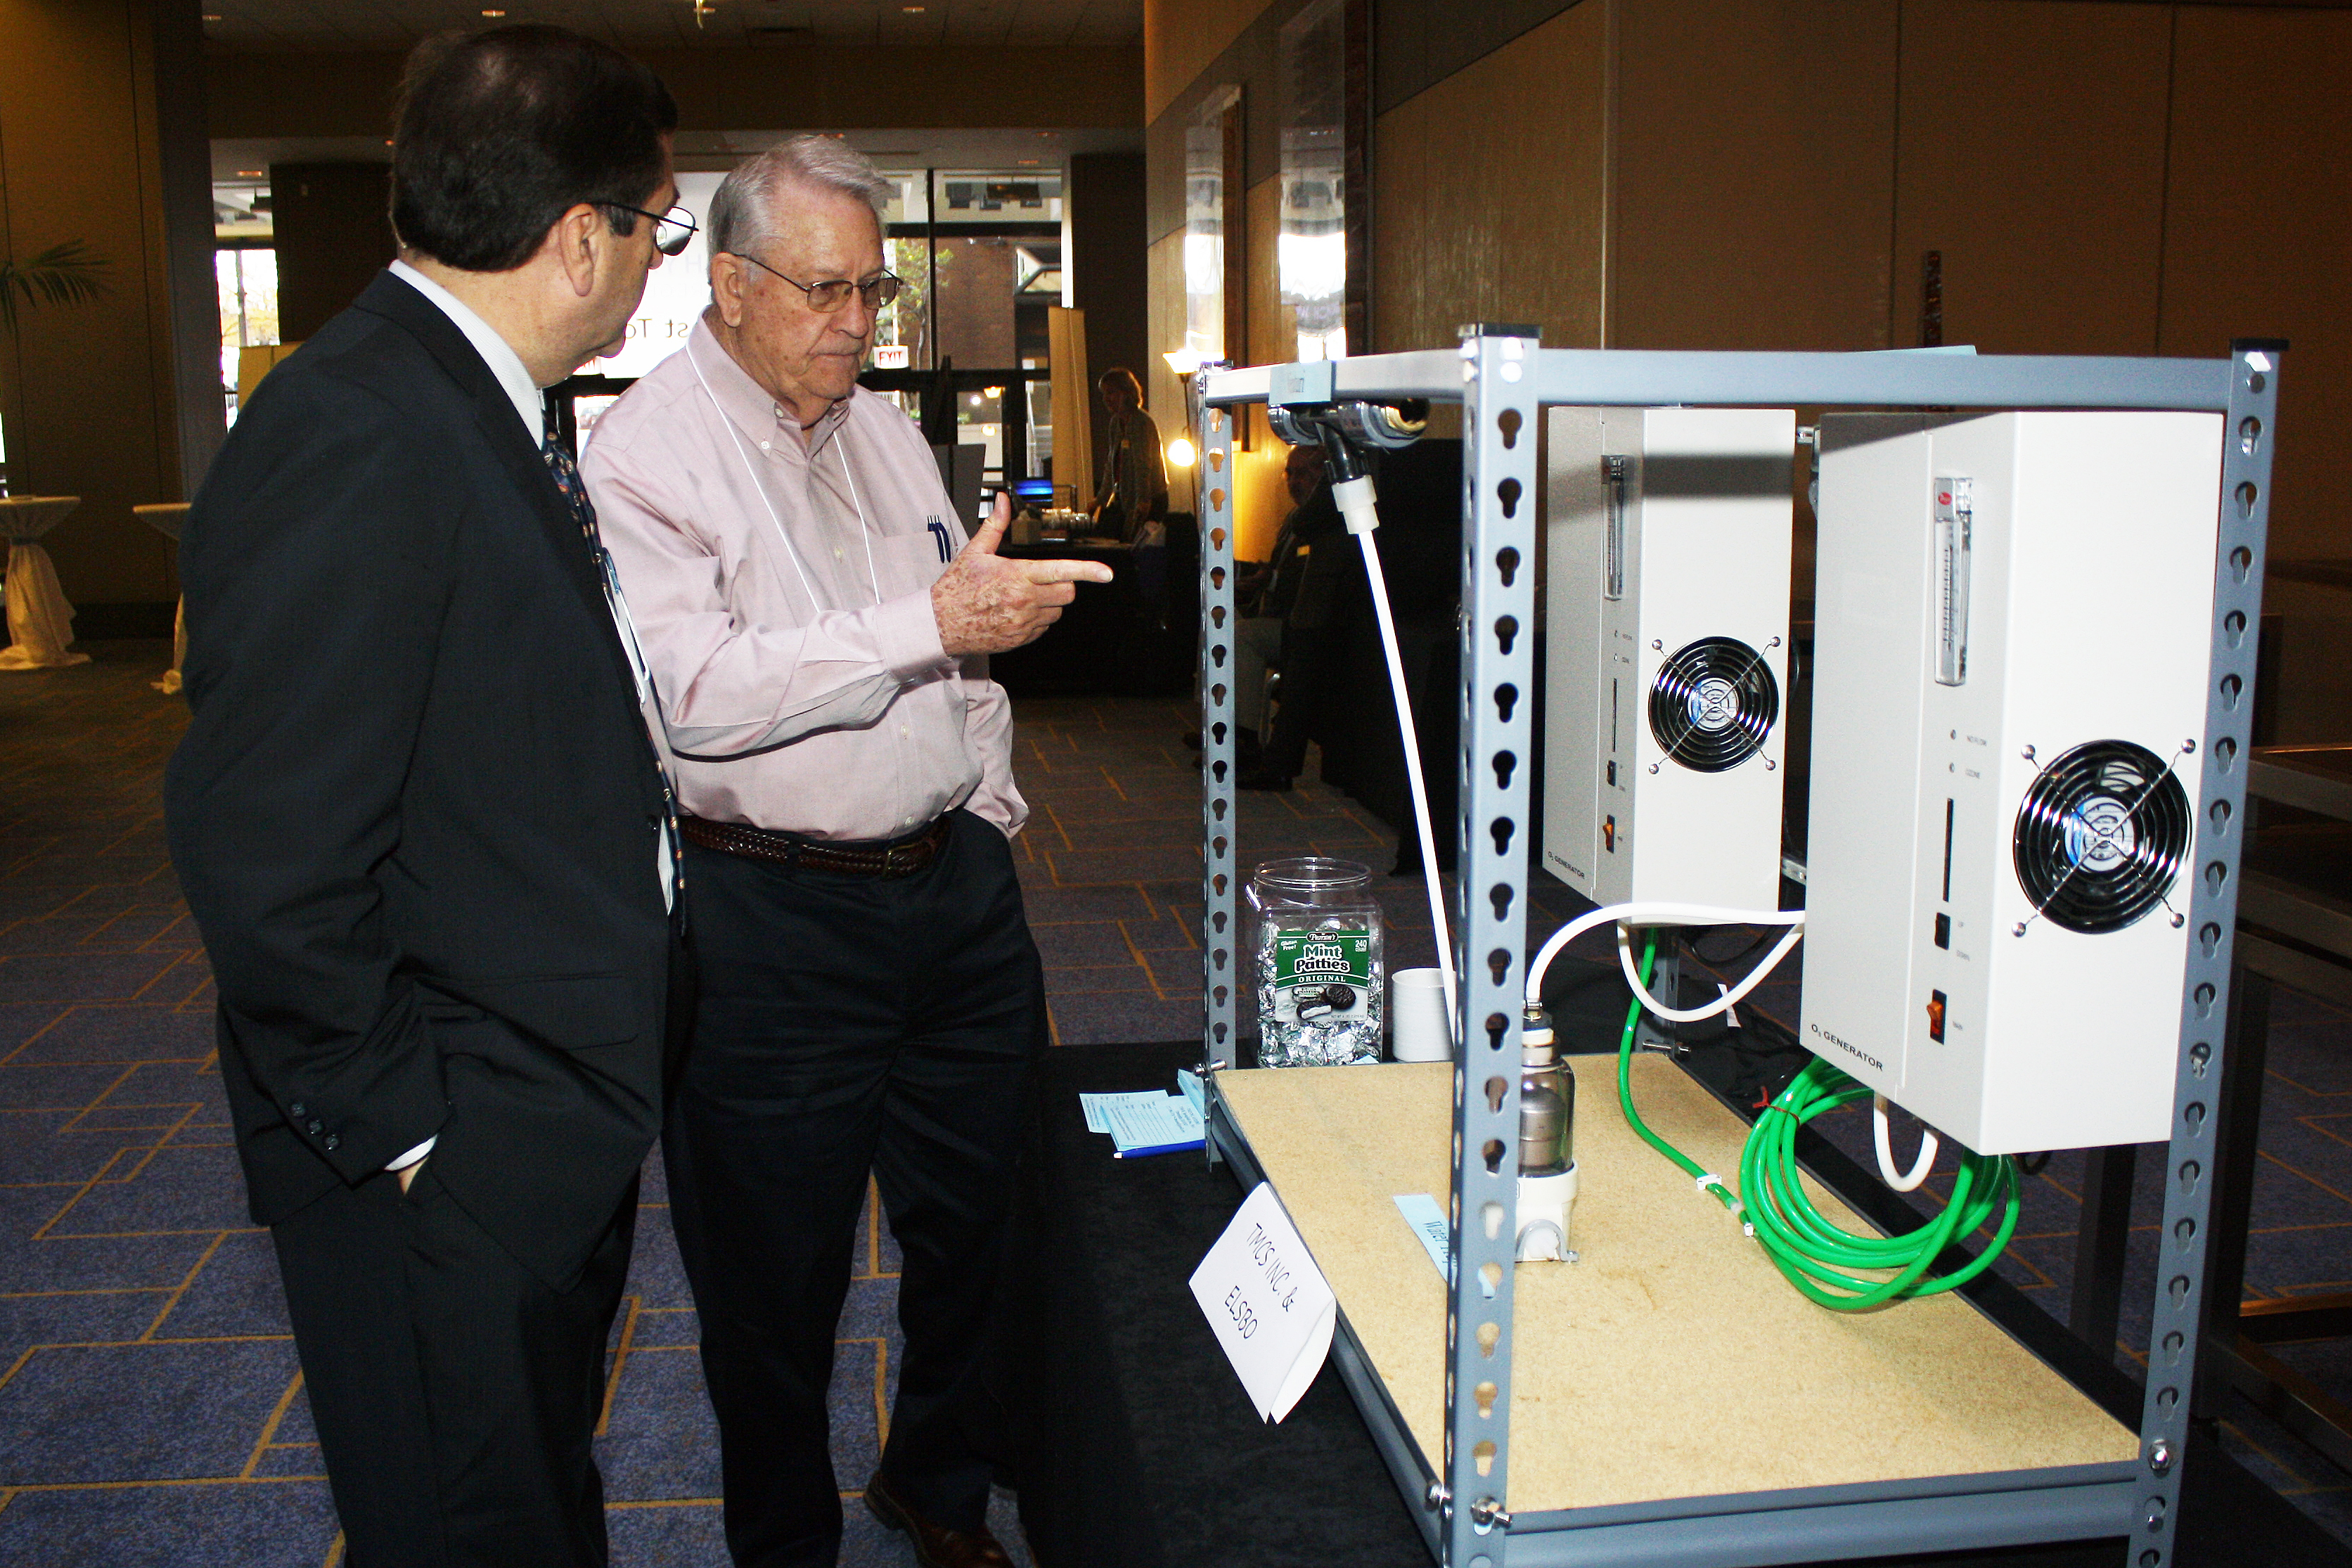 attendees looking at a display of small heating systems